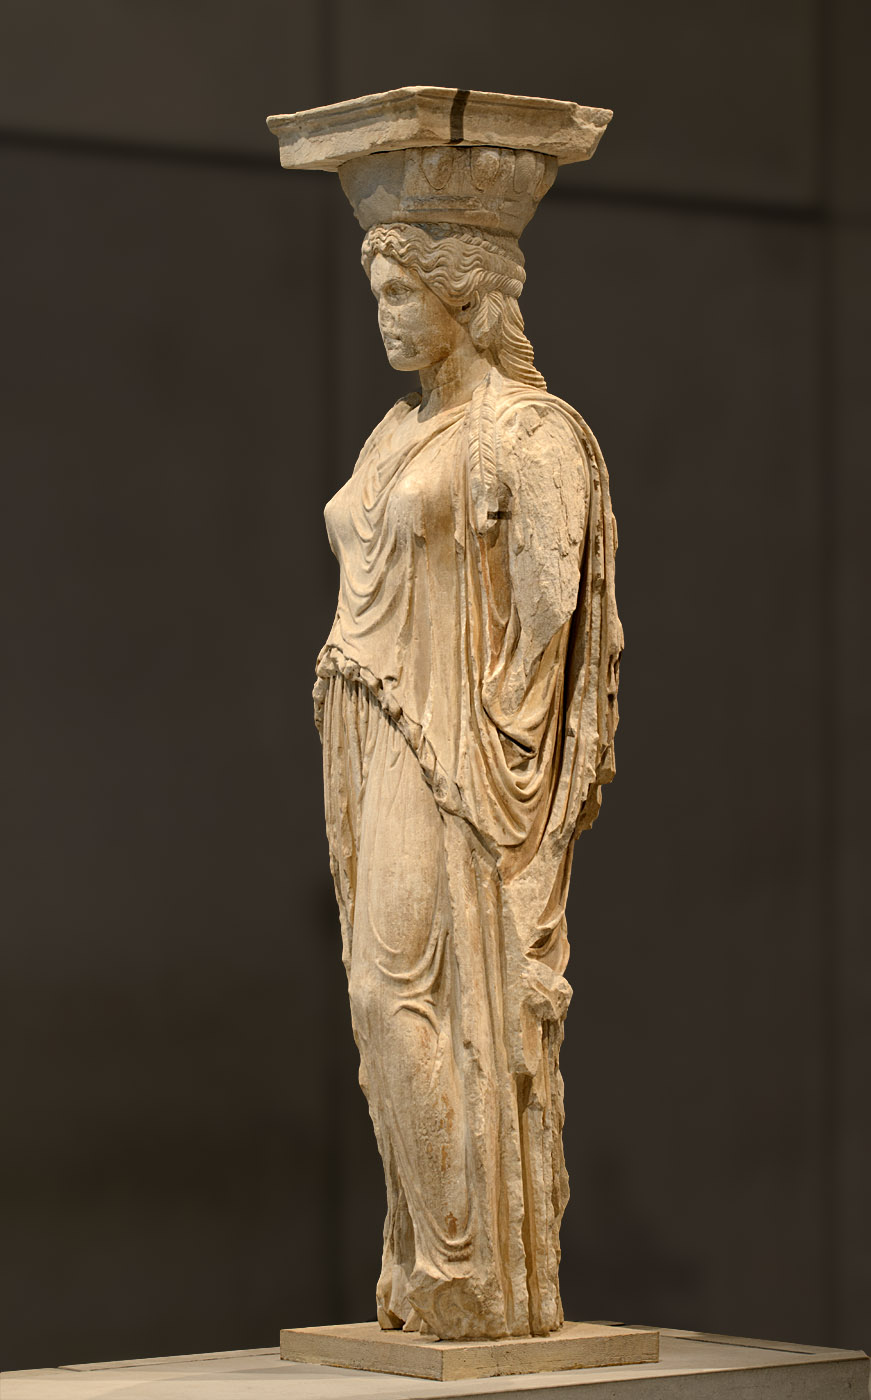 Caryatide (Kora) from the South porch of Erechtheion. Pentelic marble. 421—406 BCE. Athens, New Acropolis Museum